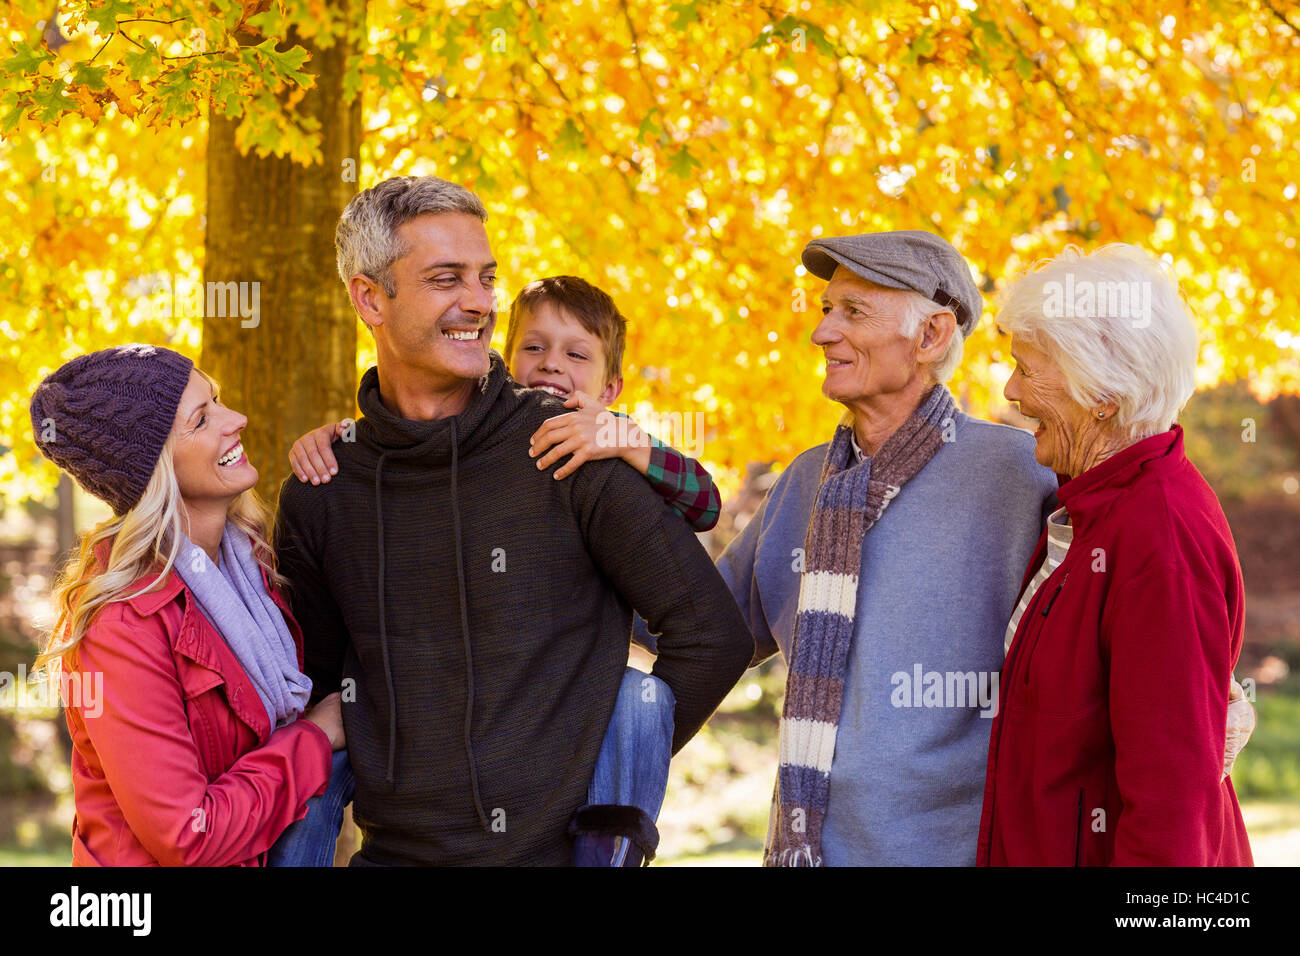 Happy family standing at park Photo Stock